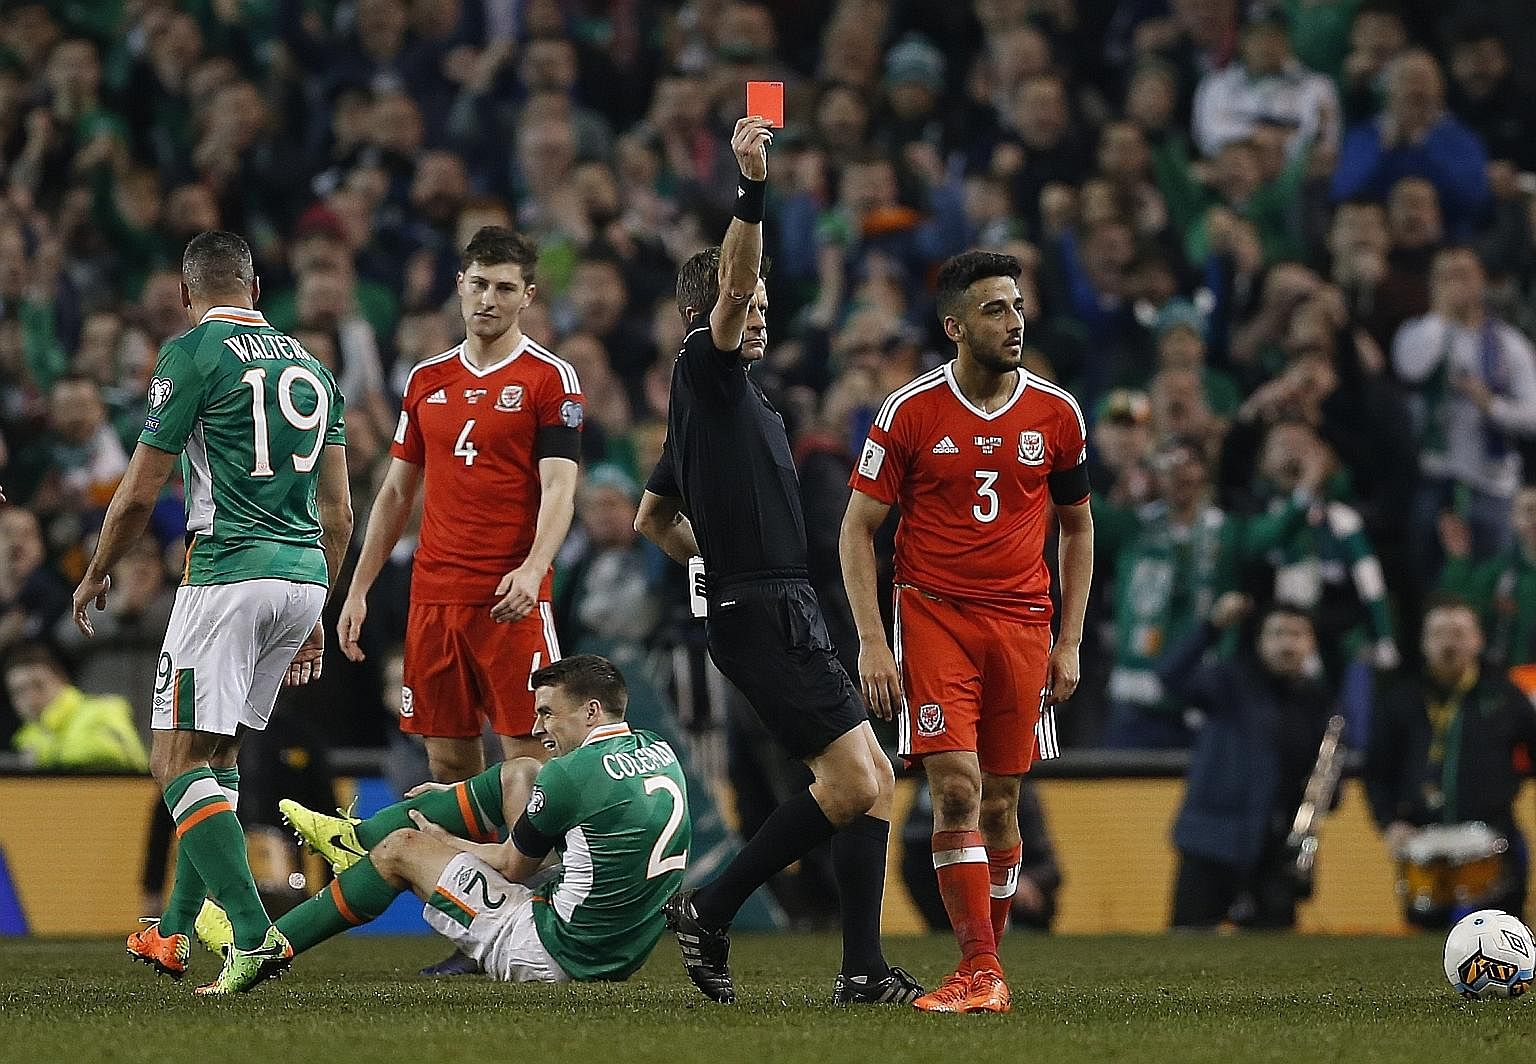 Wales defender Neil Taylor (right) receiving his marching orders after fouling Ireland's Seamus Coleman during a World Cup qualifier. His tackle left the defender with a double leg break.